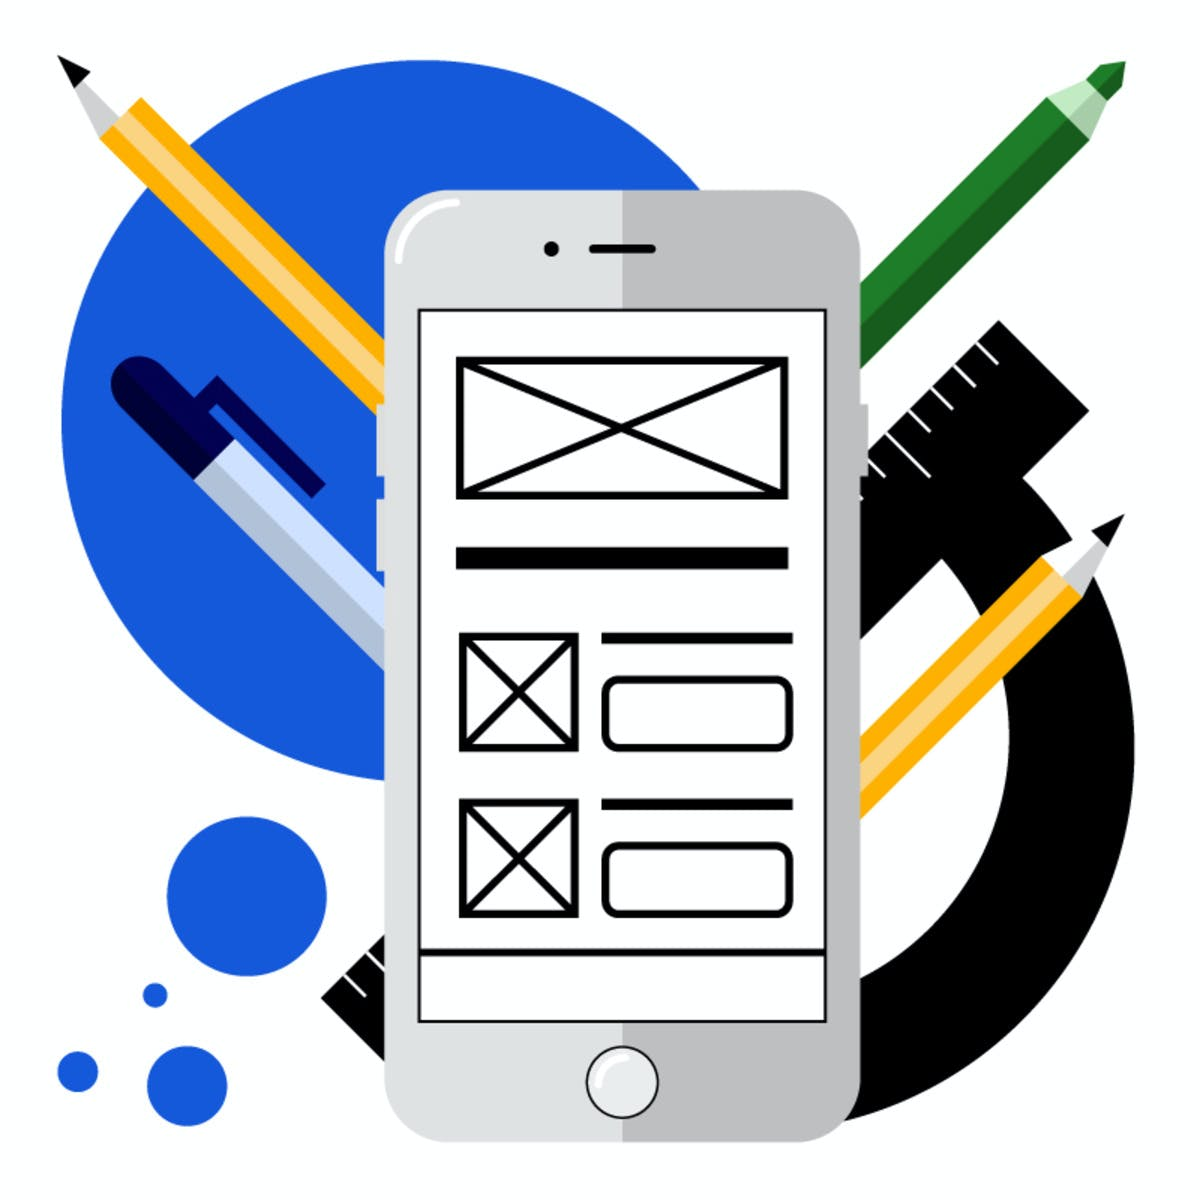 Mobile Interaction Design How To Design Usable Mobile Products And Services Coursera